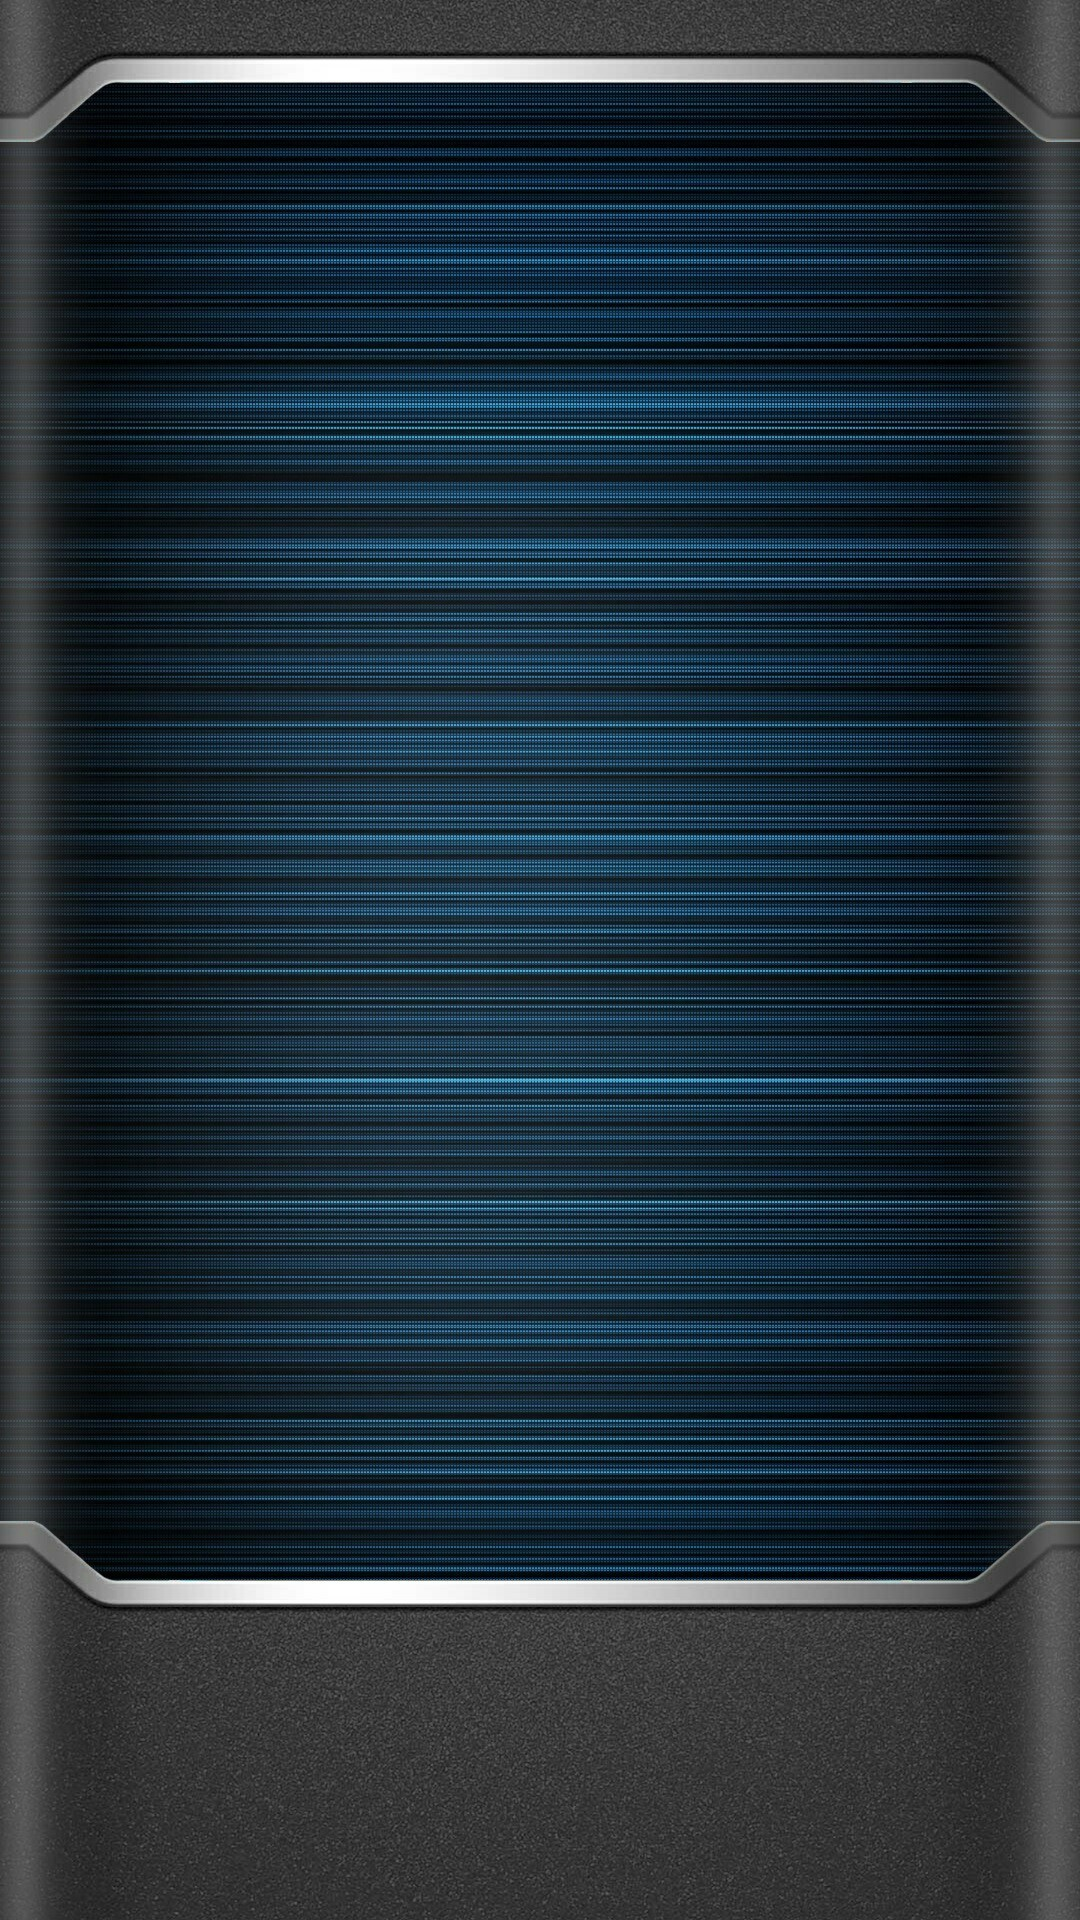 1080x1920 Black Blue and Grey Stripes Wallpaper